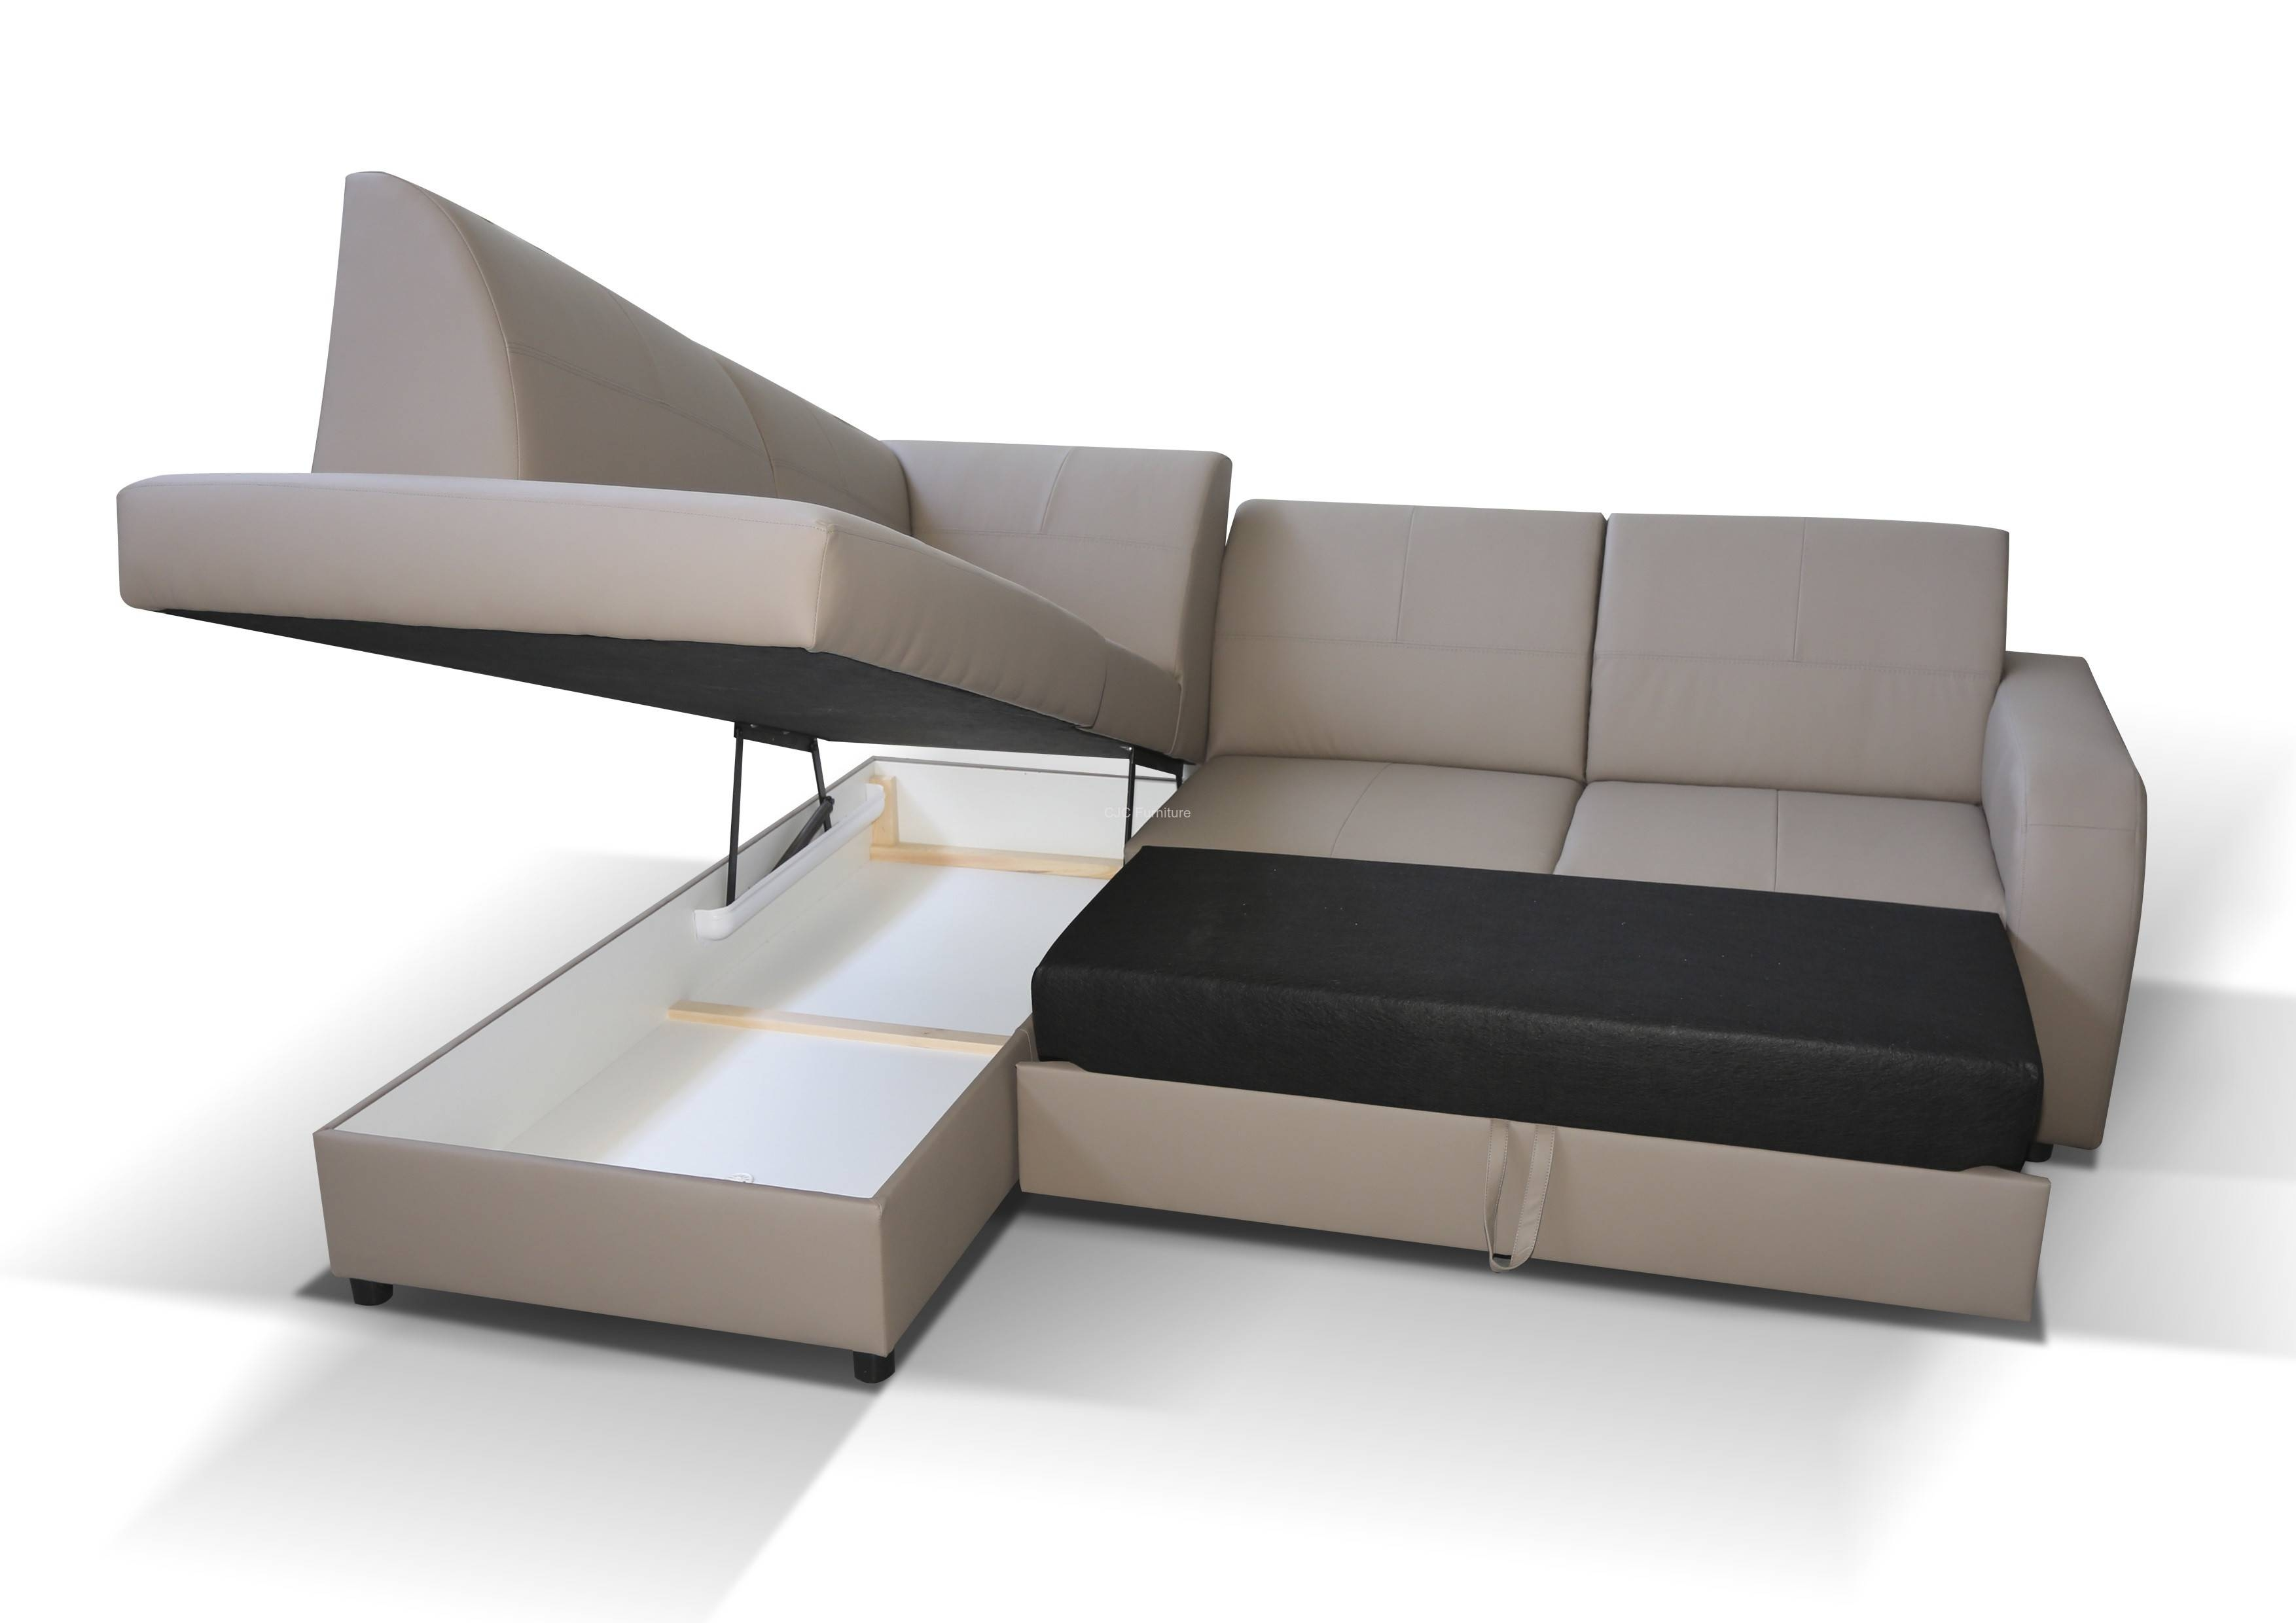 Birmingham Furniture - Cjcfurniture.co.uk Corner Sofa Beds inside Corner Sofa Beds (Image 2 of 15)